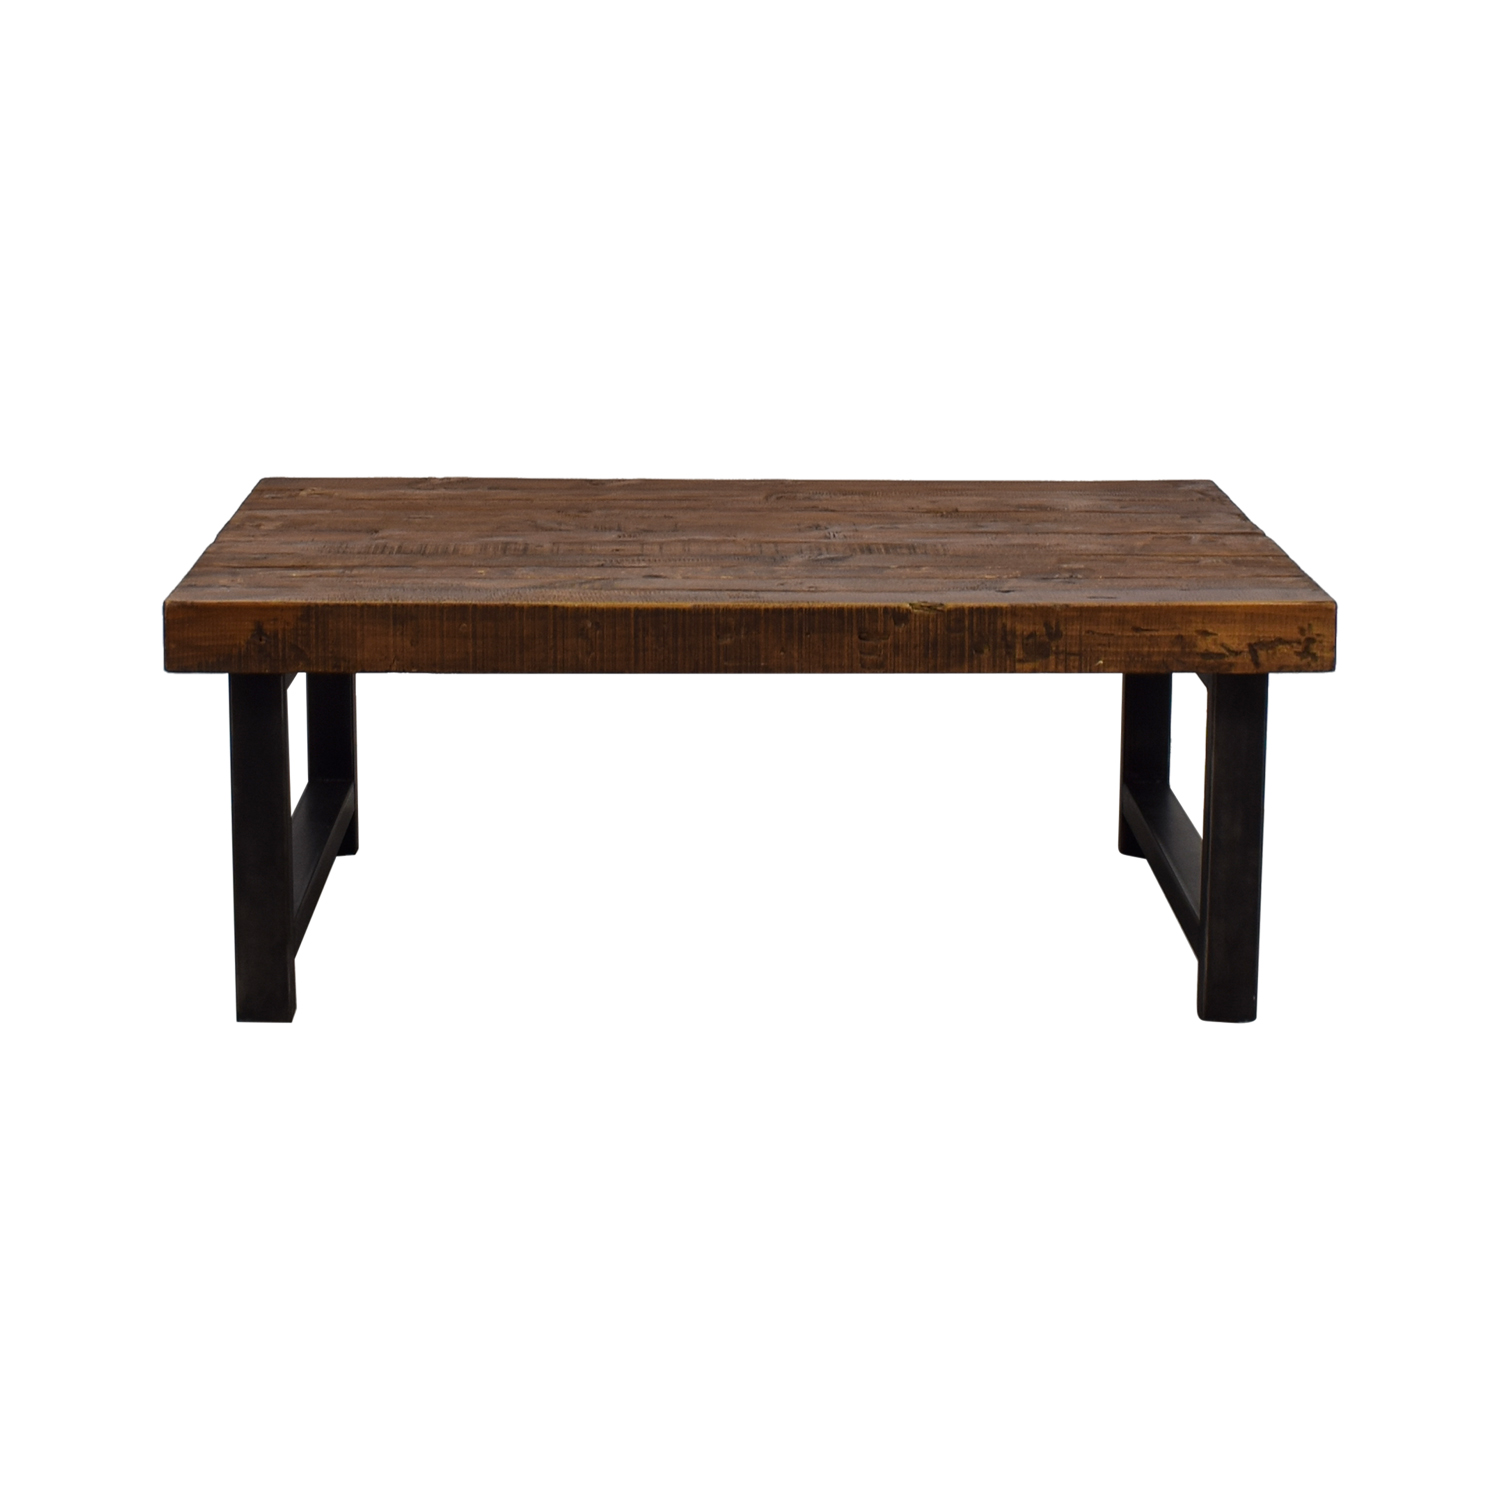 71 Off Pottery Barn Pottery Barn Reclaimed Wood Coffee Table Tables